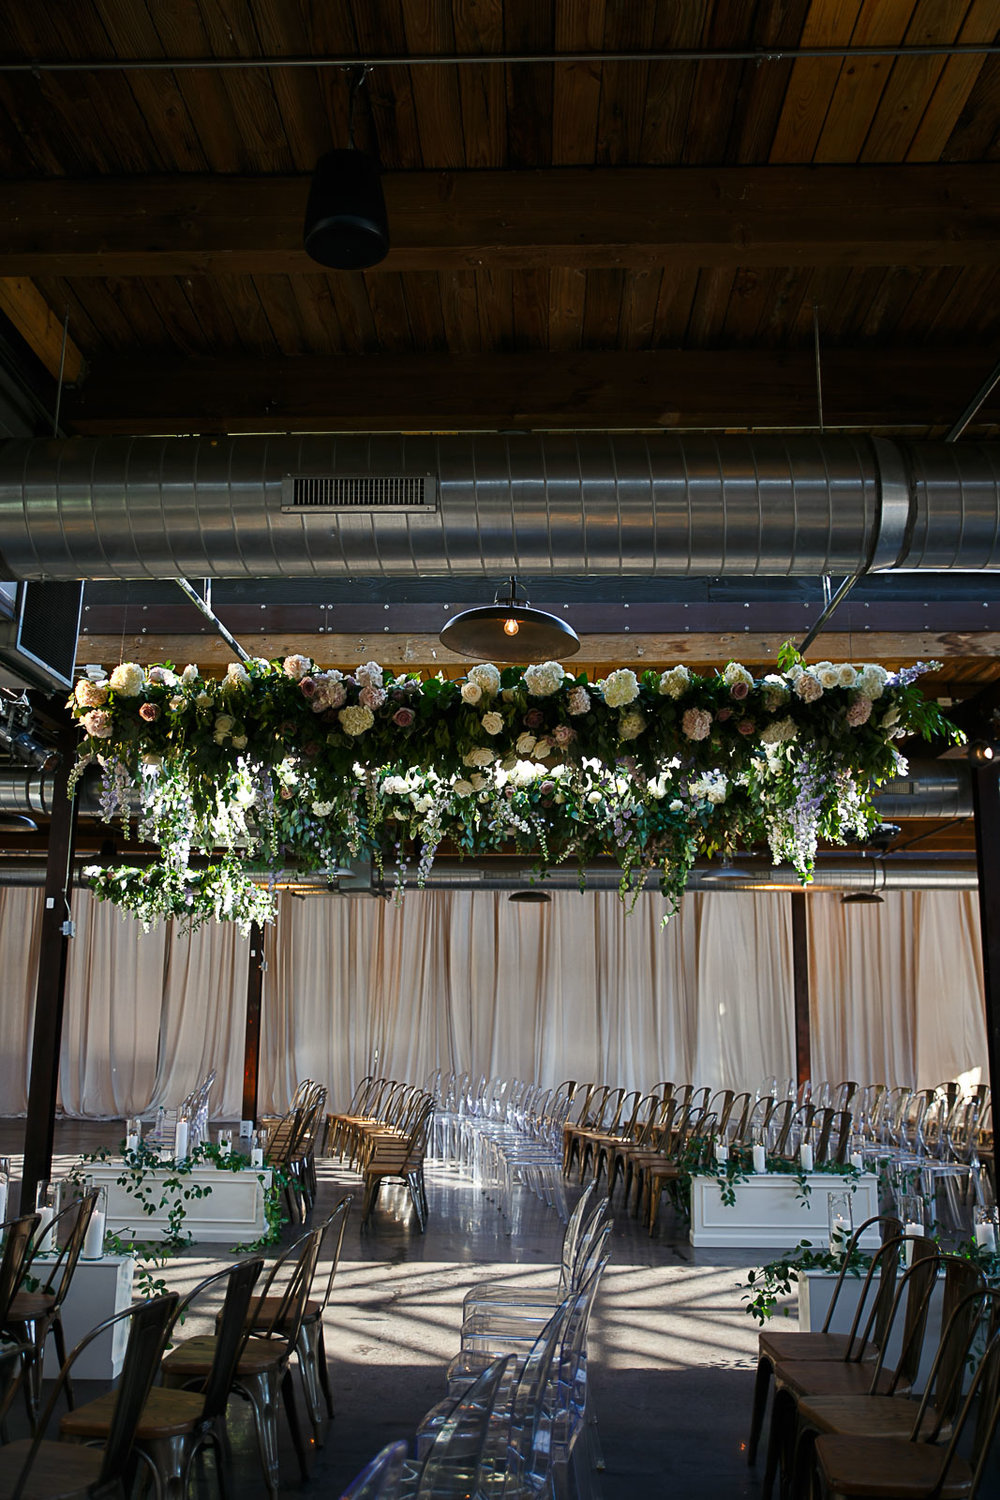 West Loop wedding venues are some of our favorites with spots like Morgan Manufacturing offering an open raw space.